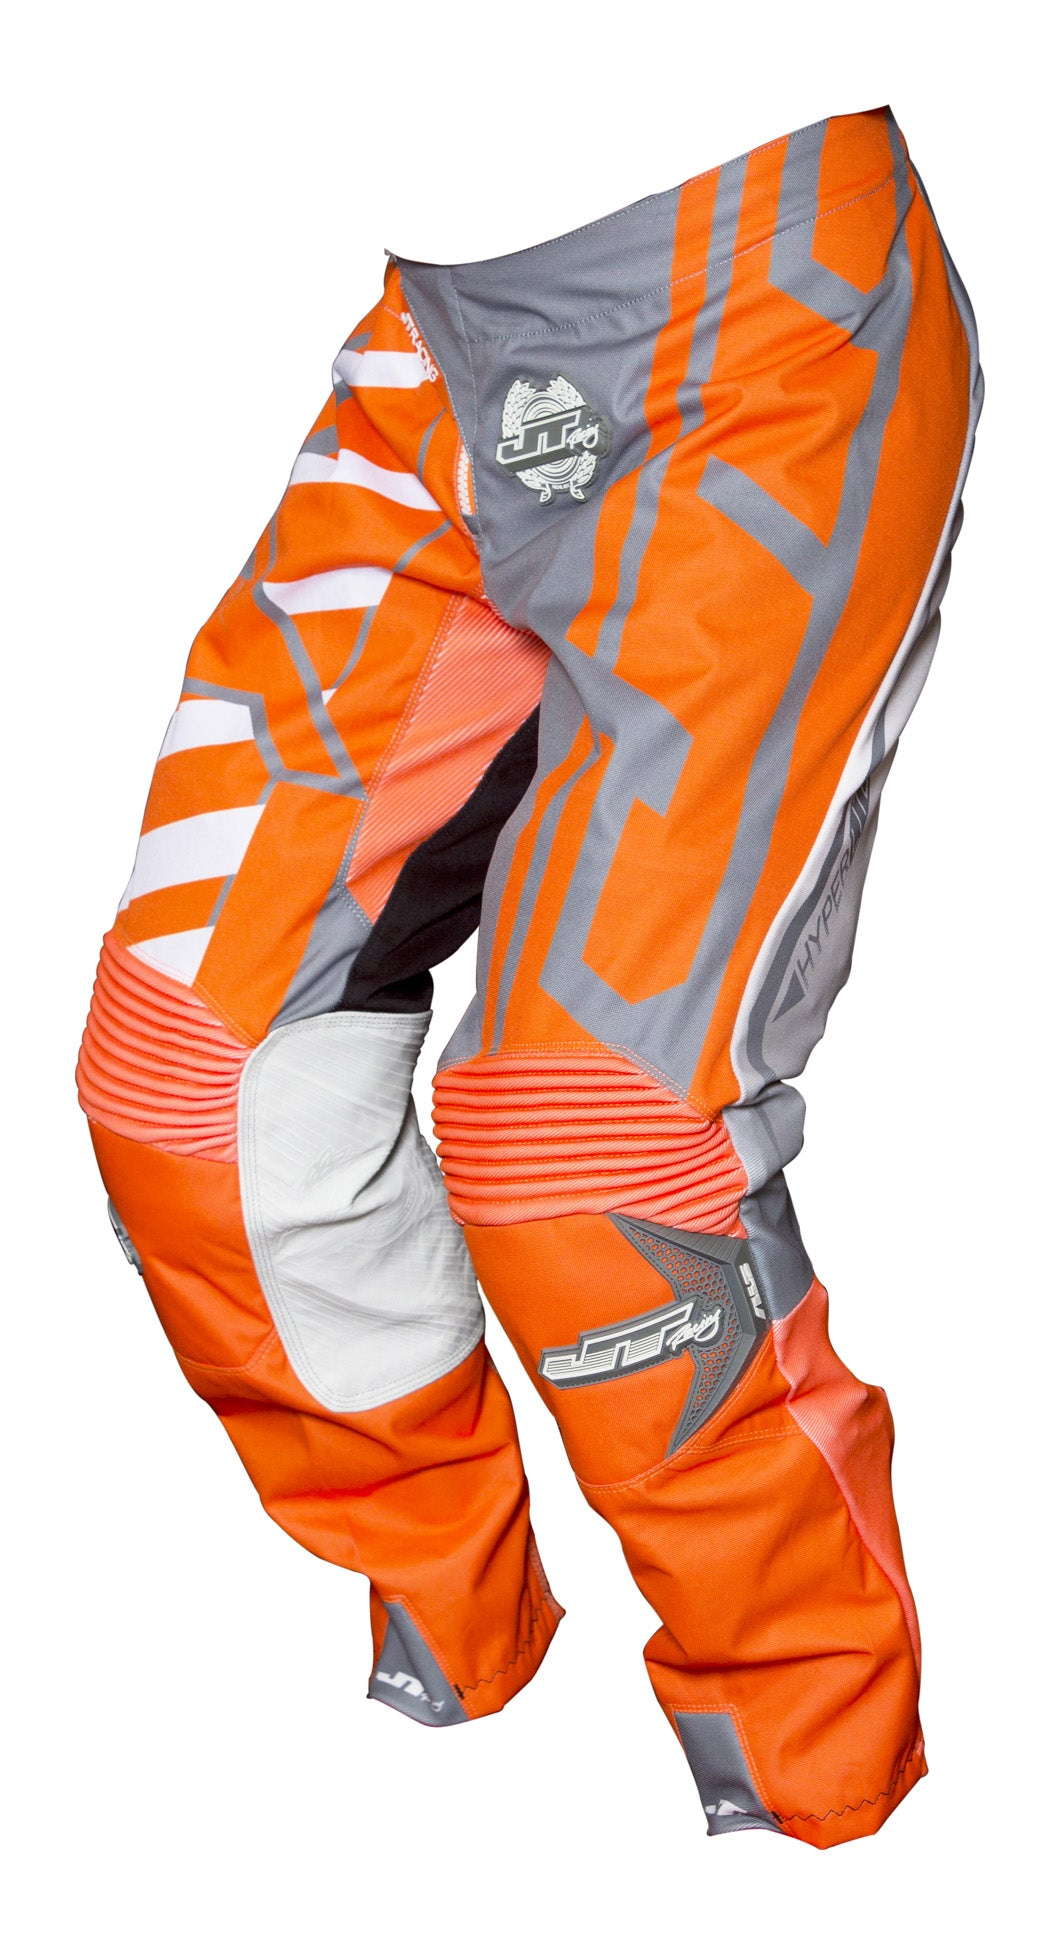 JT RACING USA Hyperlite Breaker Pants, Fluro Orange/Grey